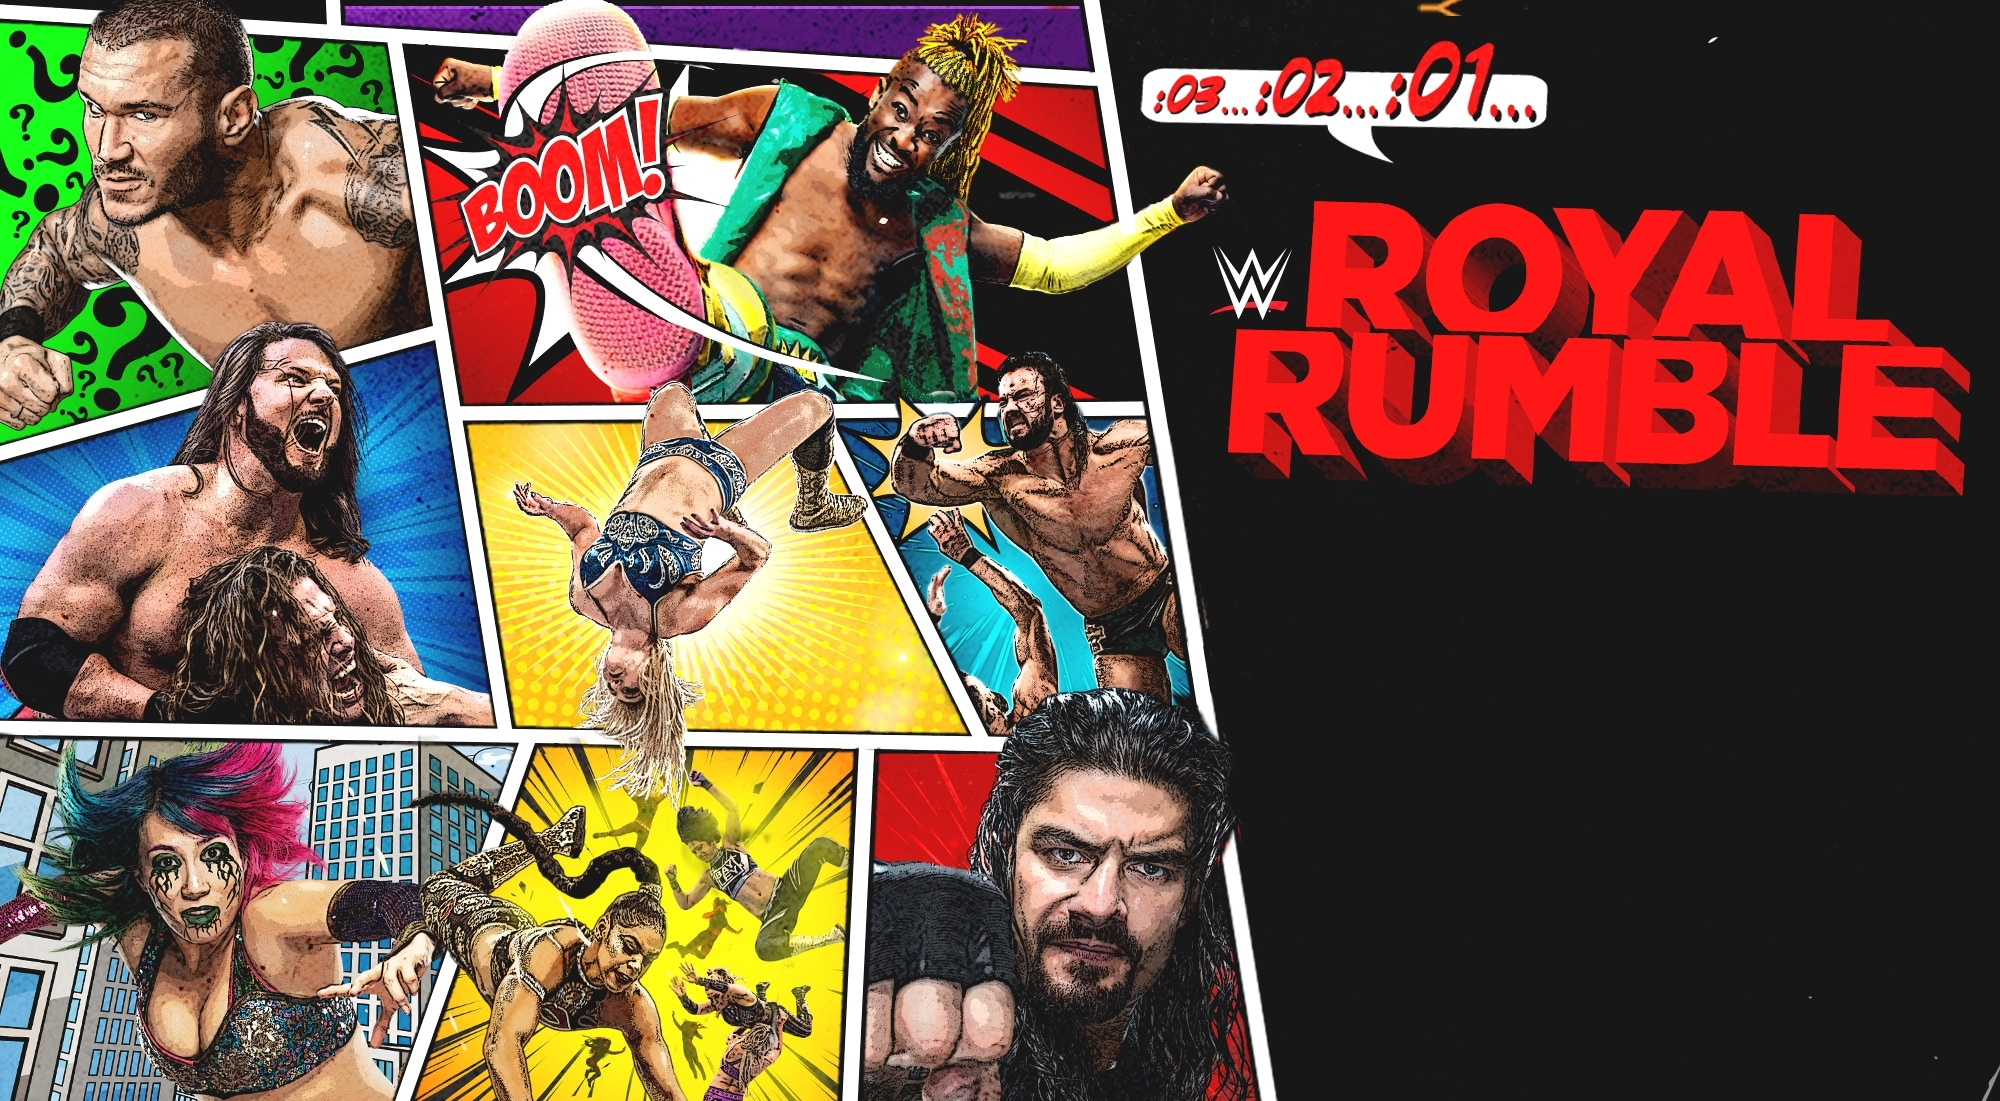 Watch WWE Royal Rumble on BT Sport Box Office